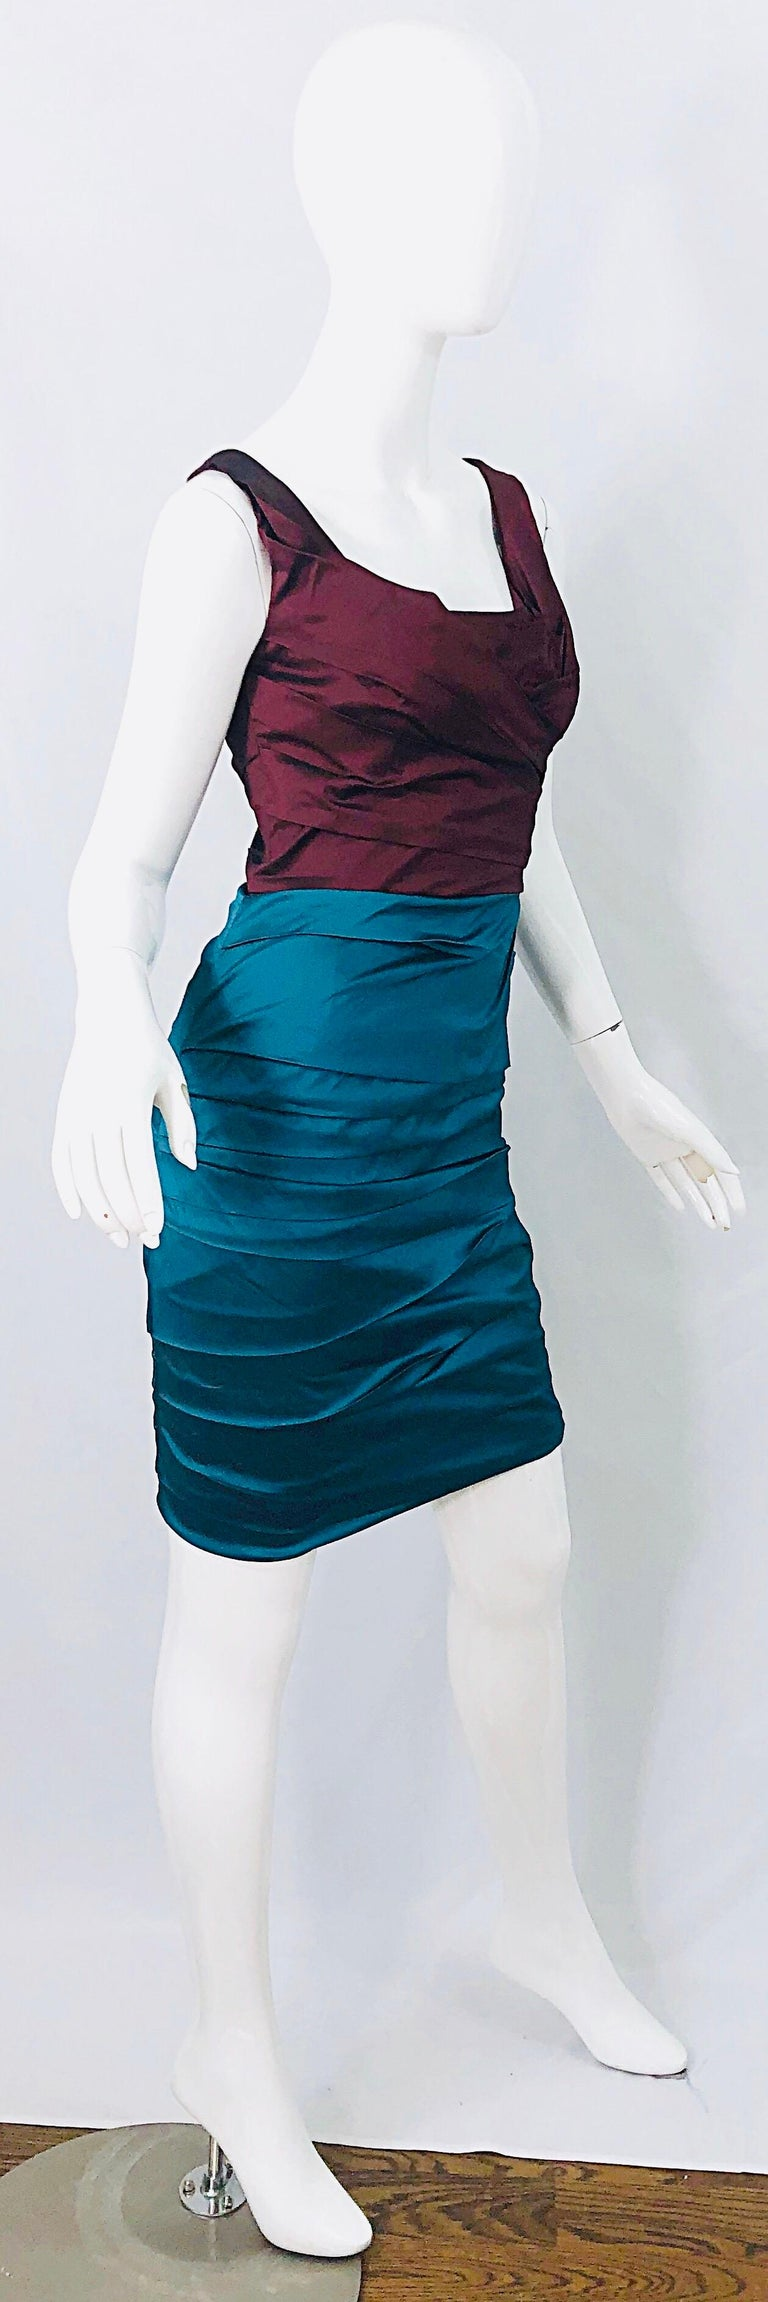 Women's NWT Dolce and Gabbana 1990s Burgundy Turquoise Blue Colorblock Vintage Dress For Sale